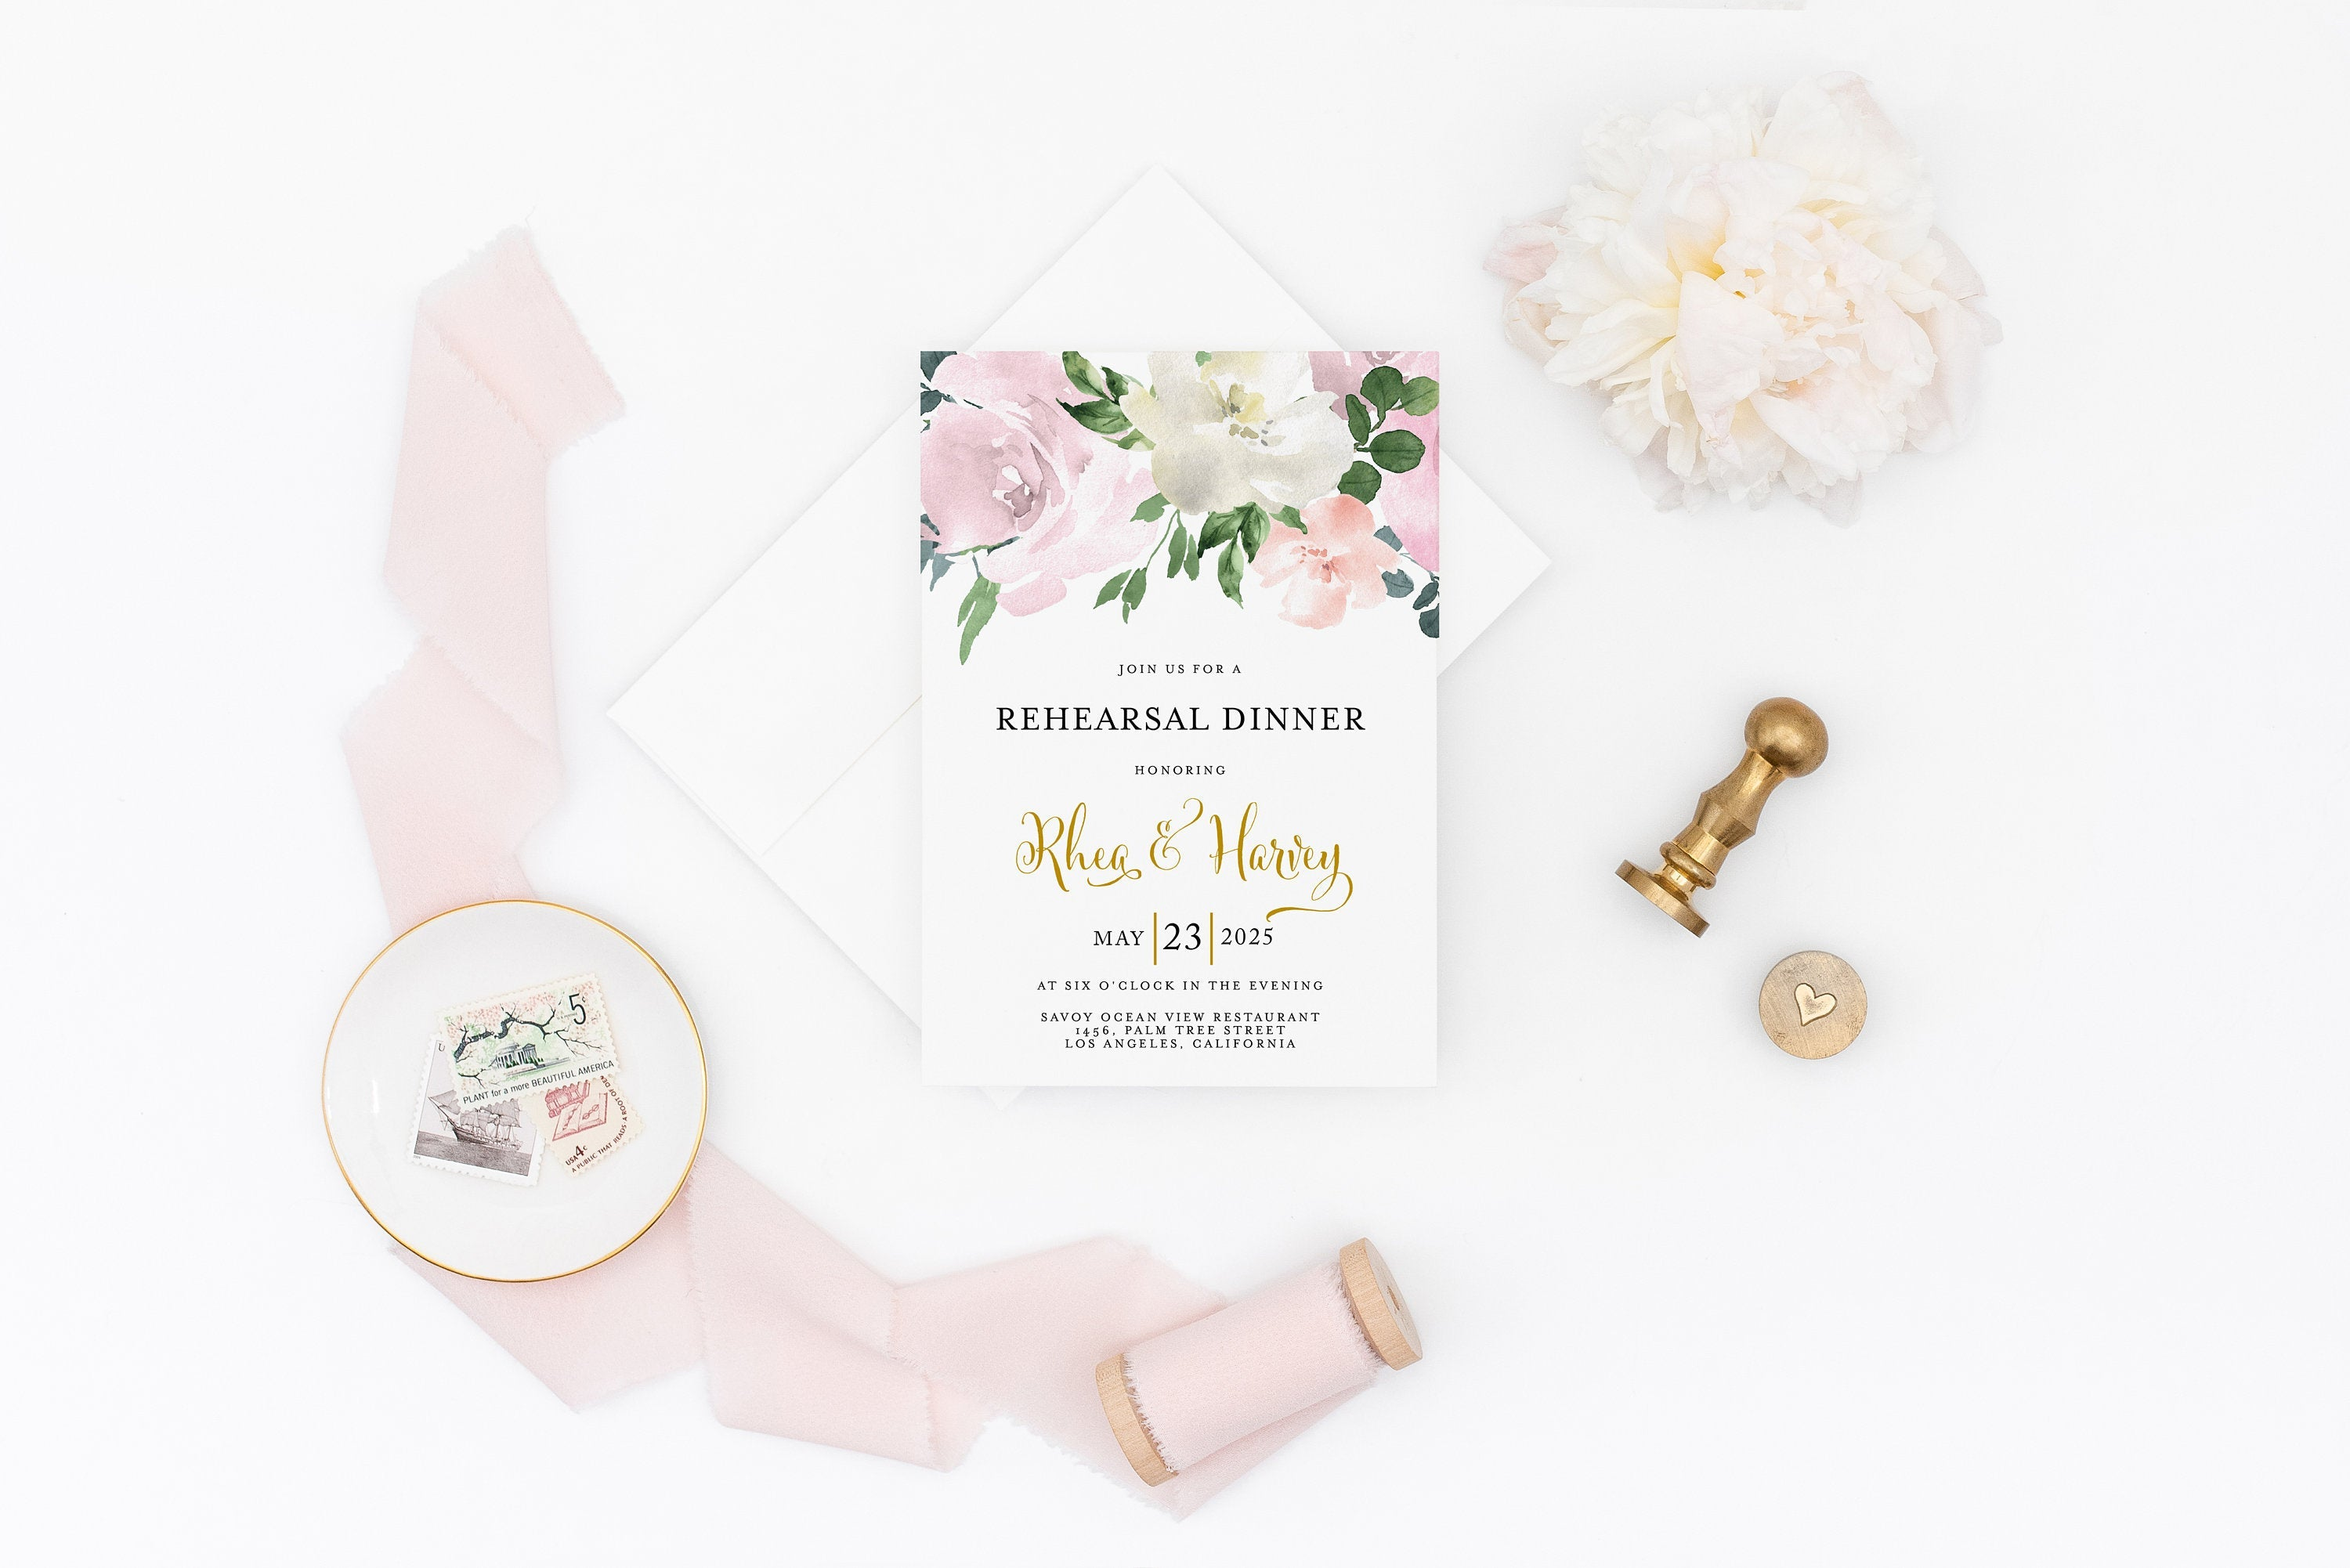 Rehearsal Dinner Invitation Template Printable Wedding Dusty Blue Blush Wedding Instant Download  - Rhea